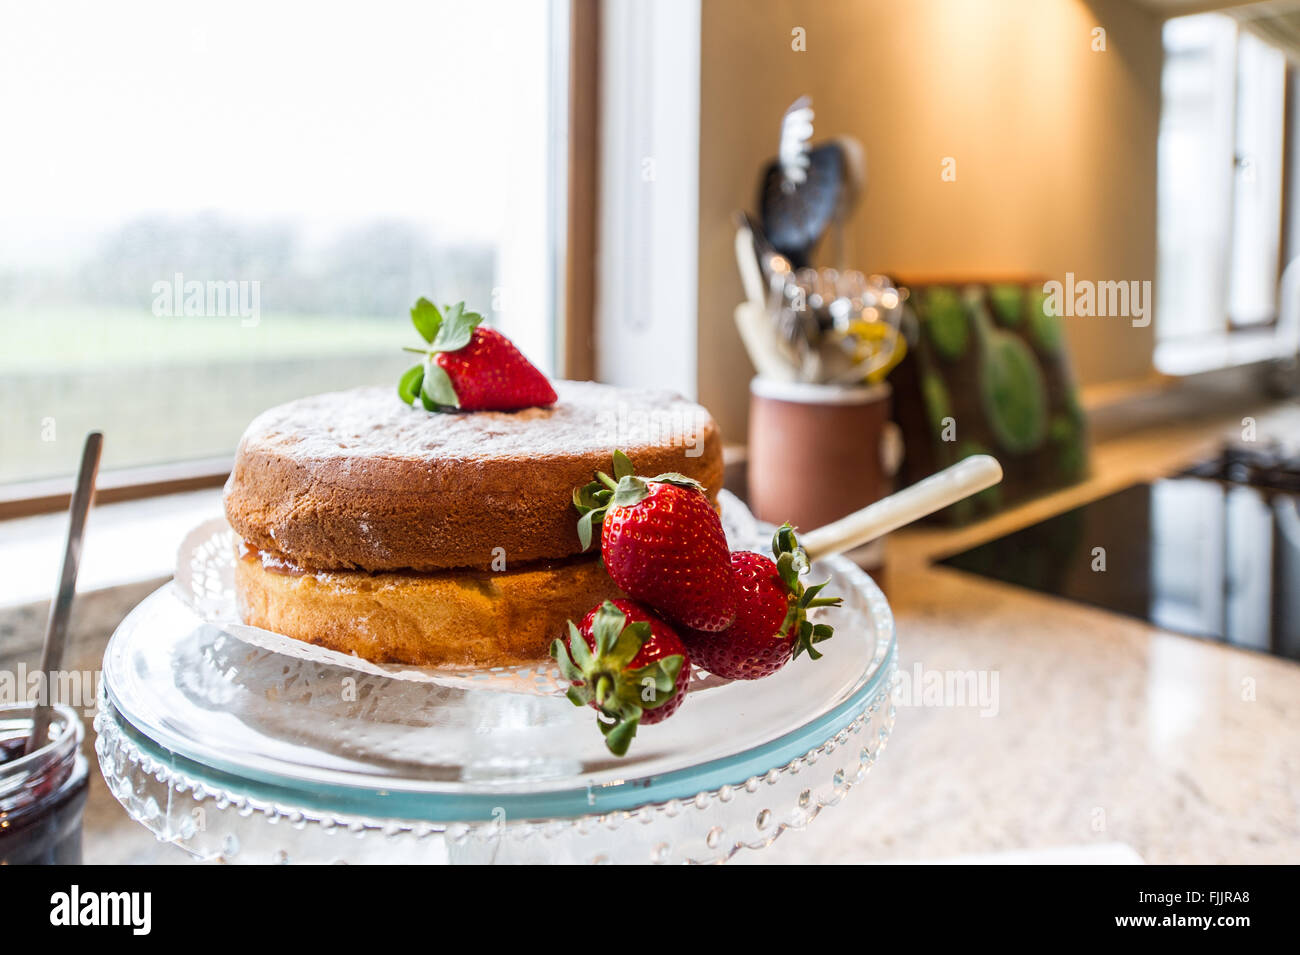 Home made sponge cake with strawberries on a stand in a domestic kitchen. - Stock Image